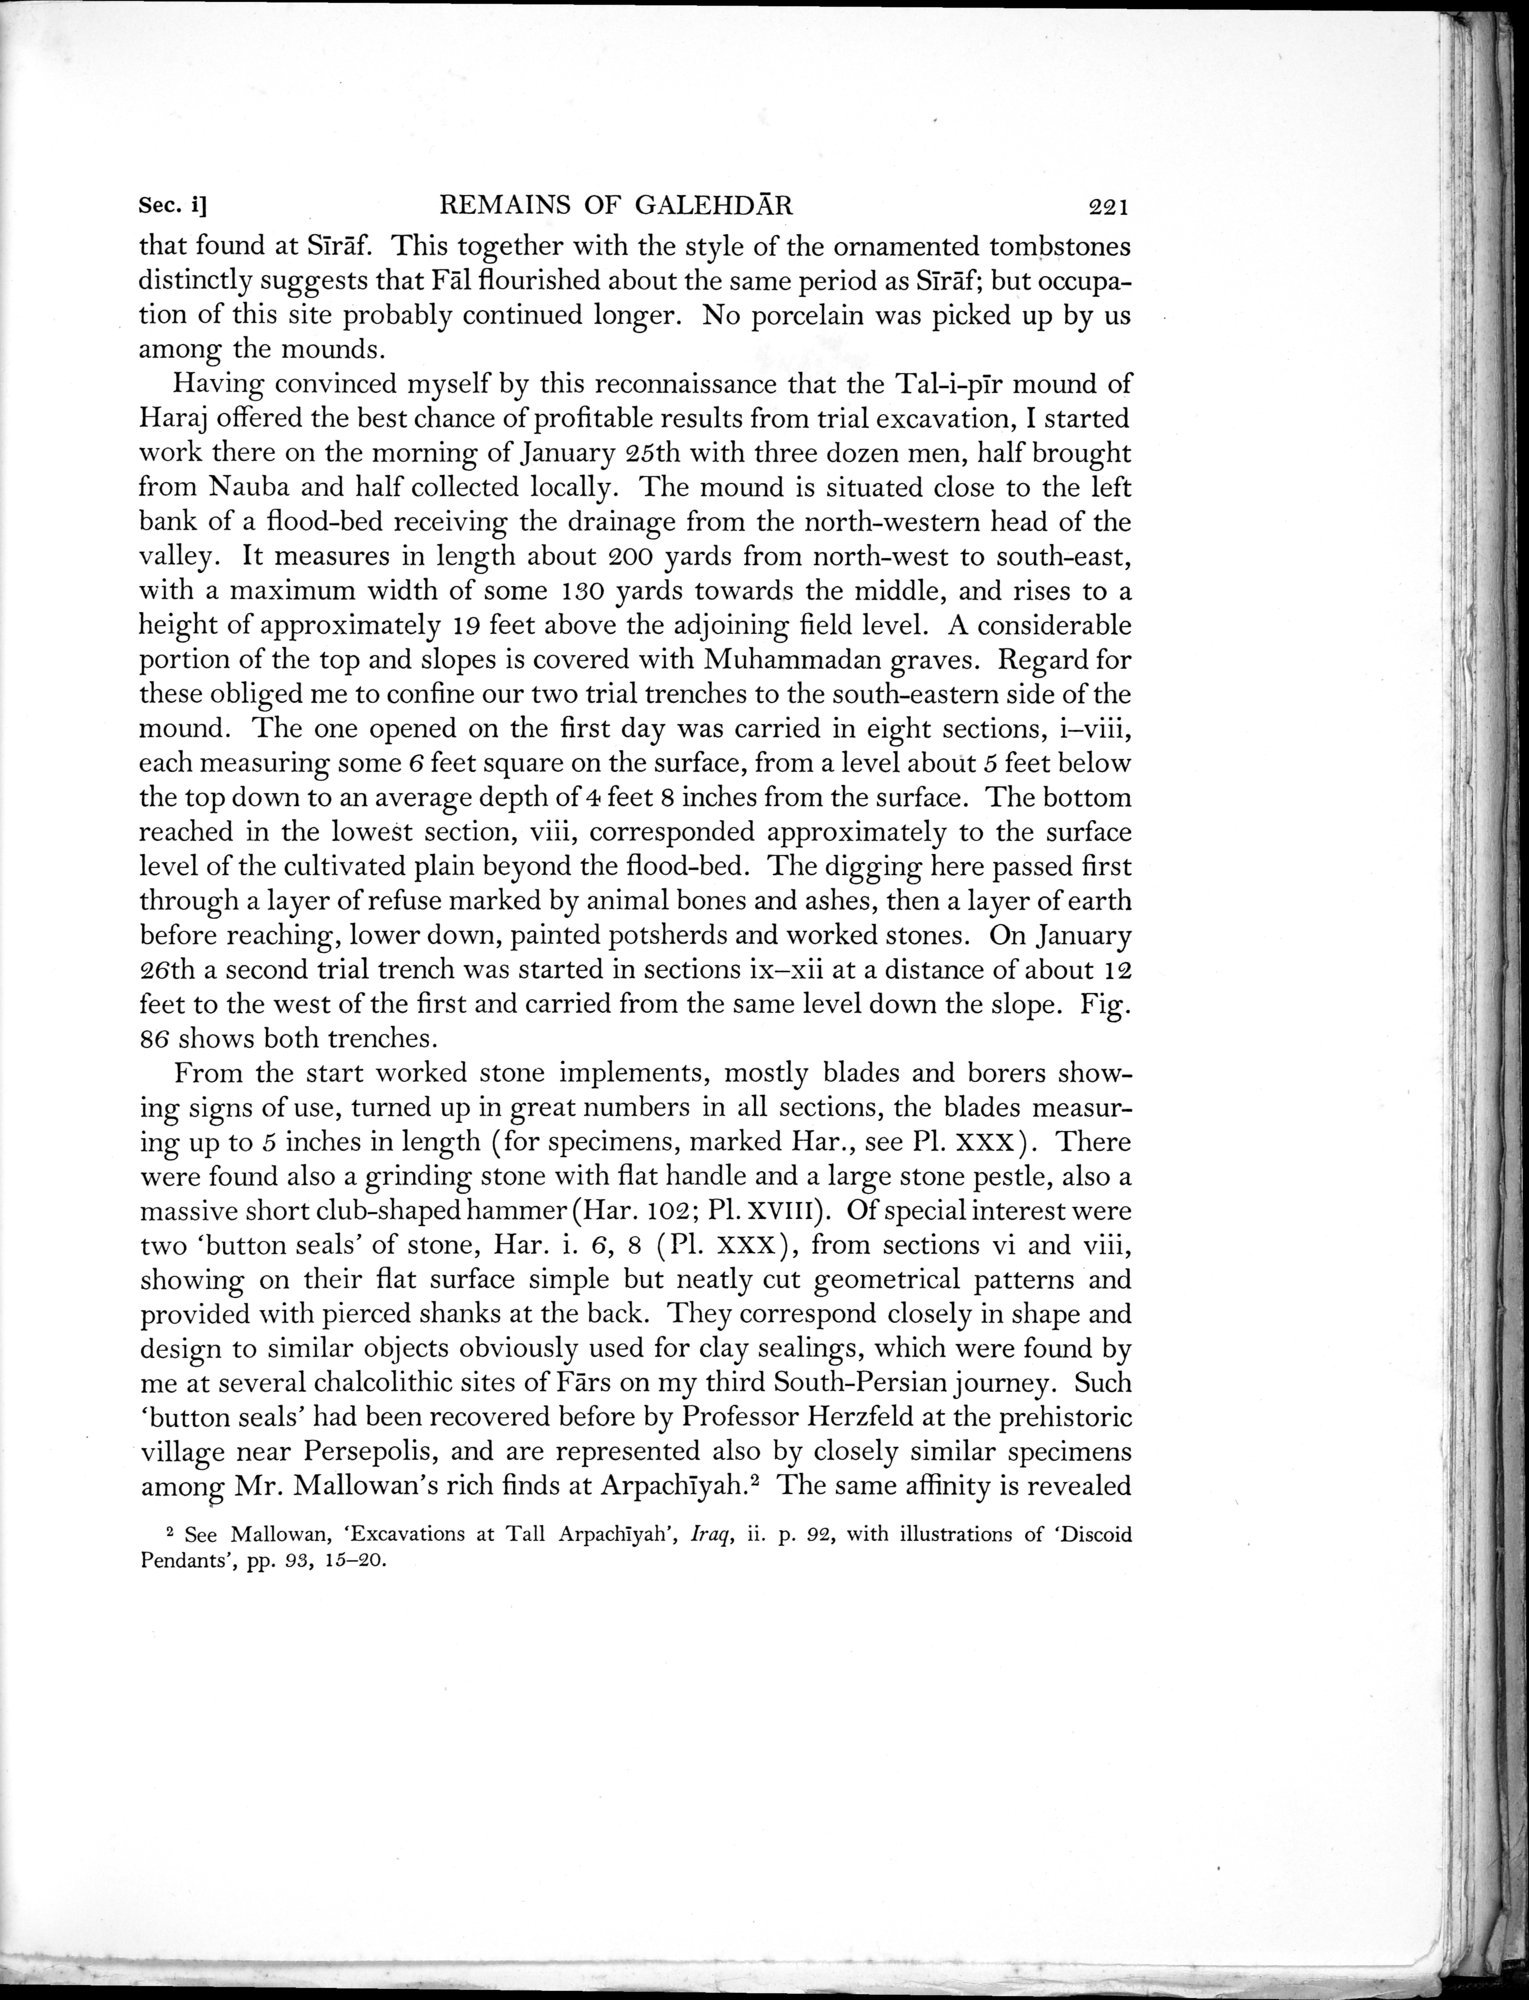 Archaeological Reconnaissances in North-Western India and South-Eastern Īrān : vol.1 / Page 303 (Grayscale High Resolution Image)